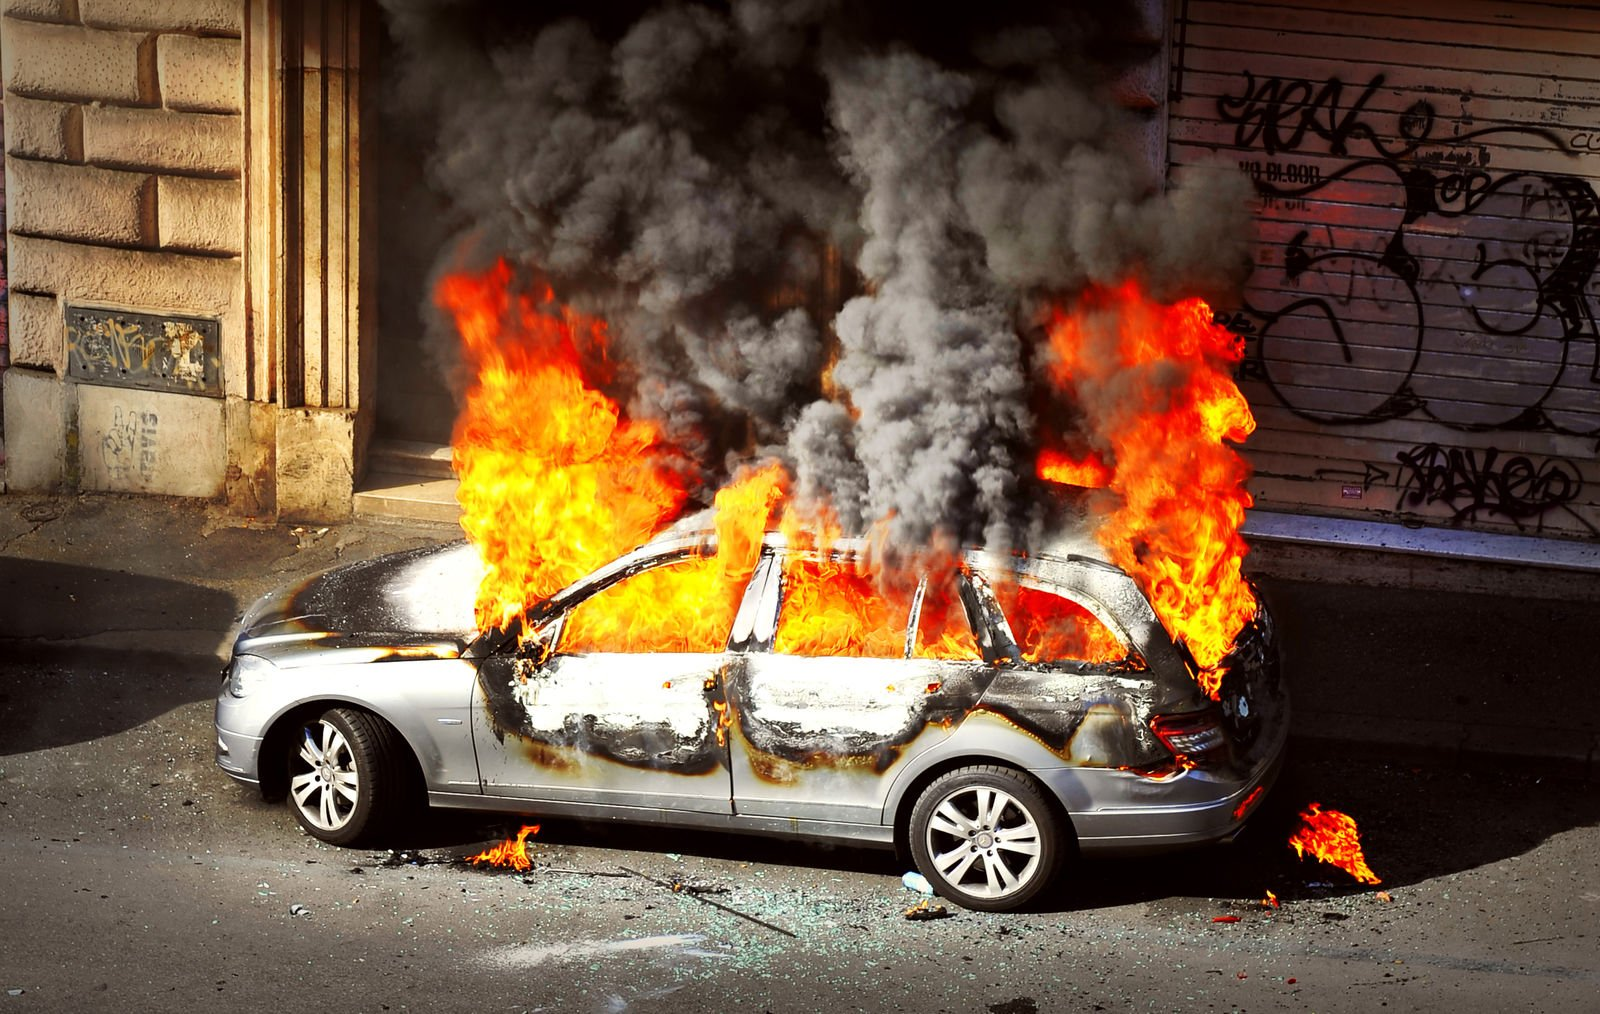 Does my Car Insurance Policy Cover Riot Damage?